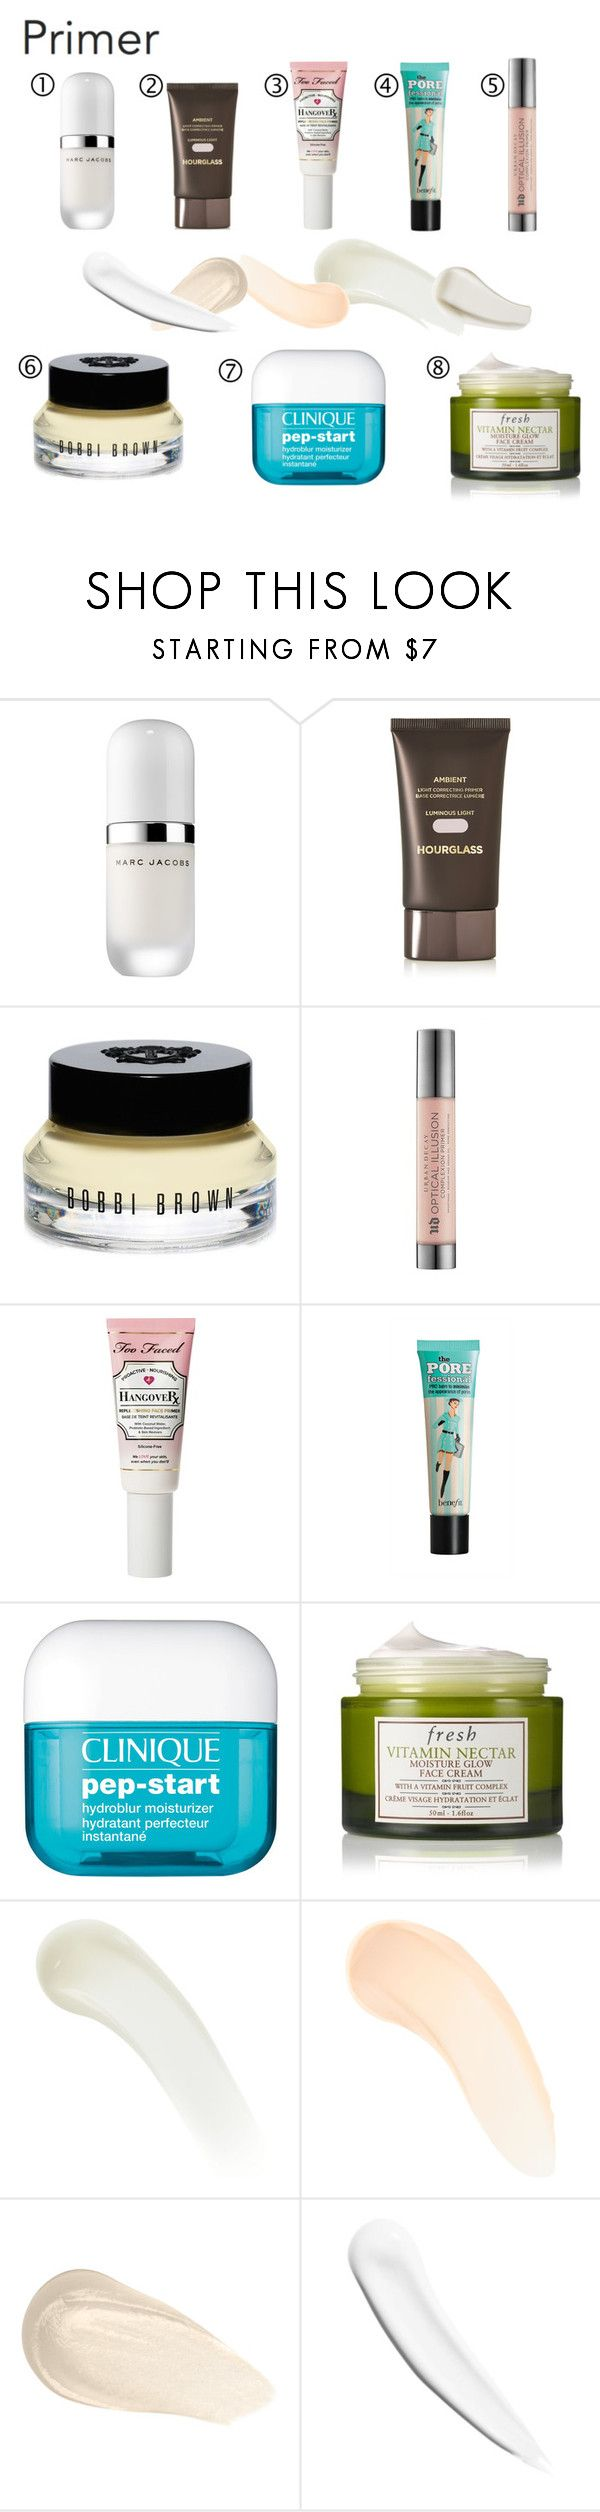 """""""PRIMER"""" by spark-llay ❤ liked on Polyvore featuring beauty, Marc Jacobs, Hourglass Cosmetics, Bobbi Brown Cosmetics, Urban Decay, Too Faced Cosmetics, Benefit, Clinique, Fresh and NARS Cosmetics"""